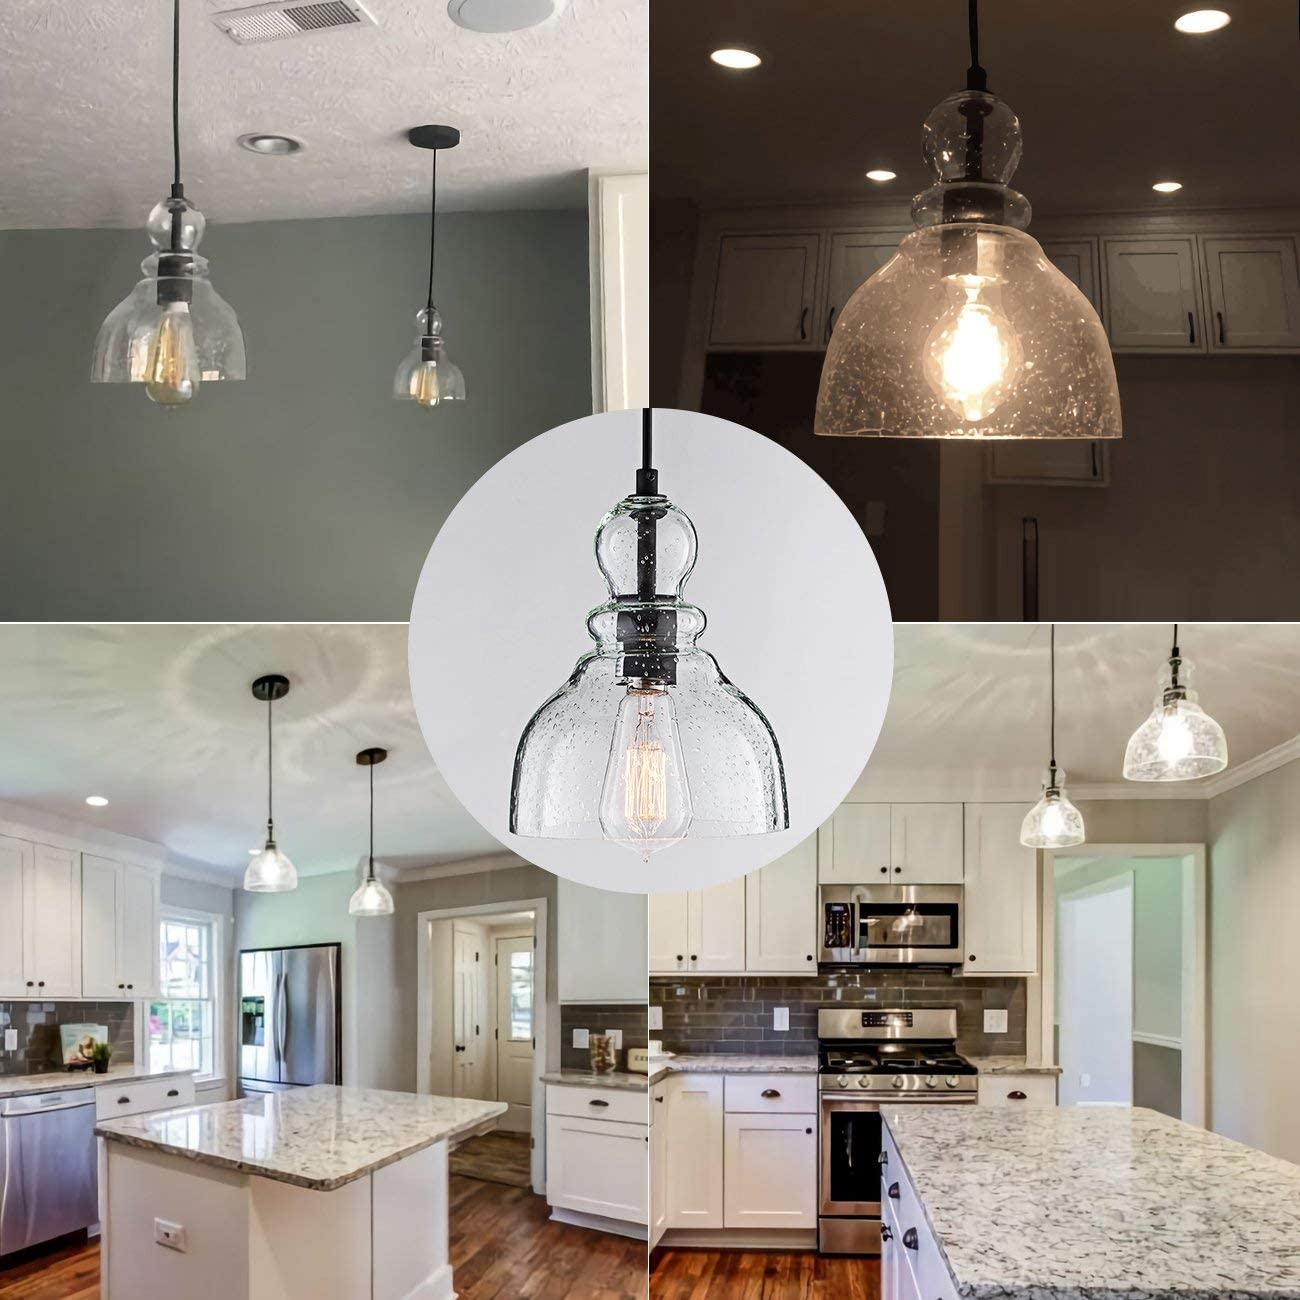 LANROS Industrial Mini Pendant Lighting with Handblown Clear Seeded Glass Shade, Adjustable Cord Farmhouse Lamp Ceiling Pendant Light Fixture for Kitchen Island Restaurant Kitchen Sink, Black, 1 Pack - -